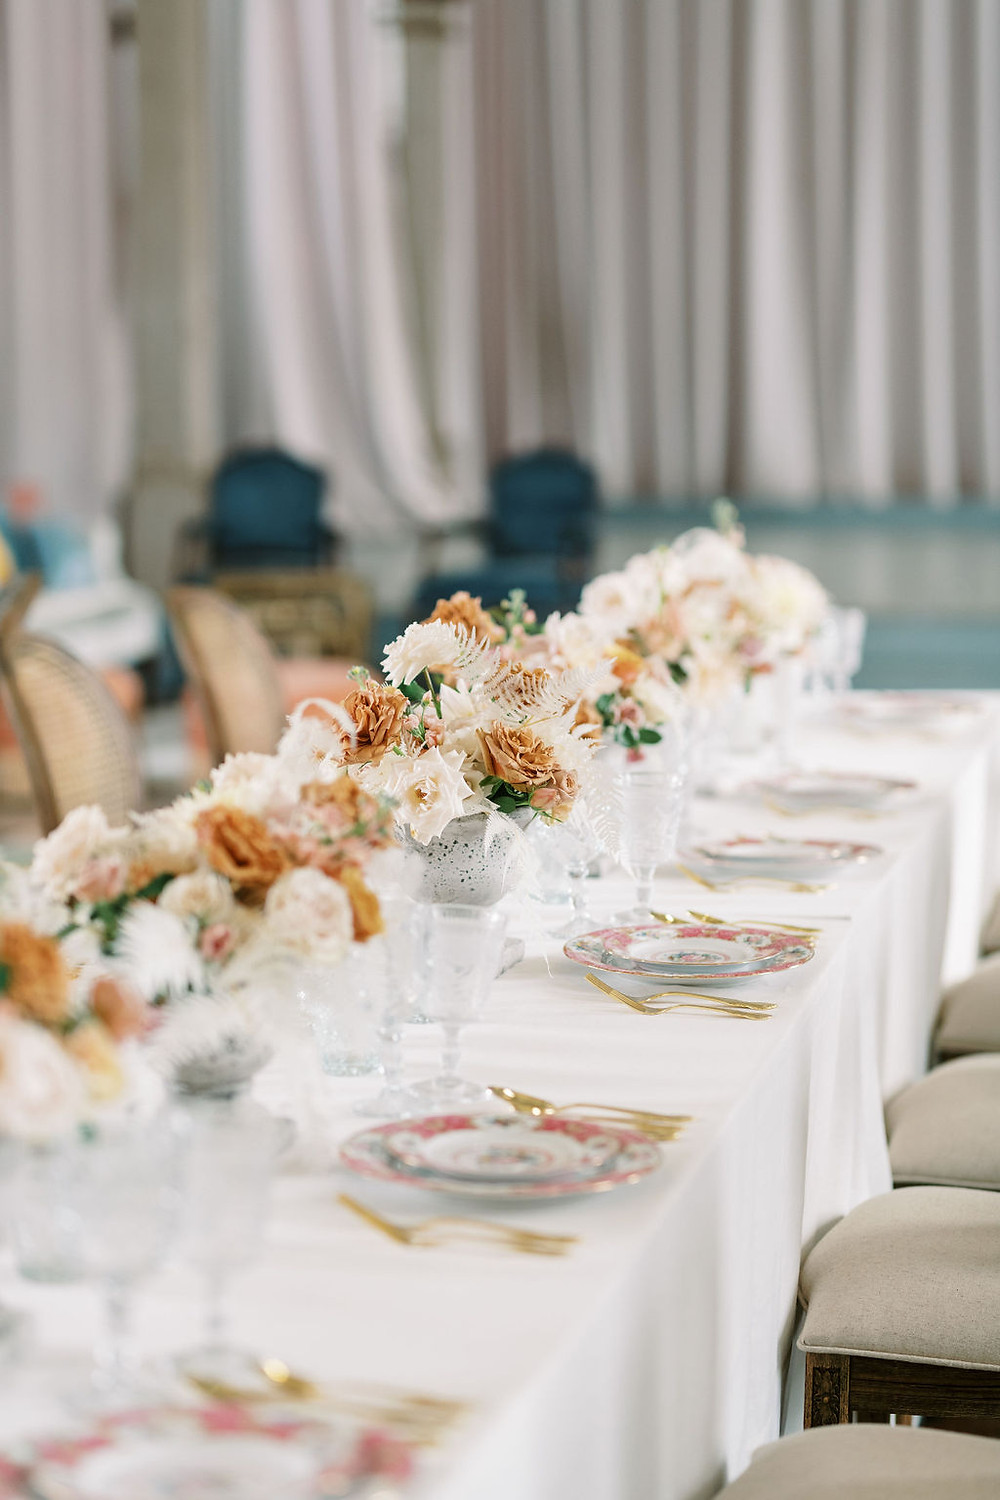 Seated Dinner for Bridgerton Inspired Wedding at the Marigny Opera House in New Orleans with Decor and Vintage Furniture by Lovegood Rentals Featuring Caned Louis Chairs and Linen Tables and Mixed Cream Florals